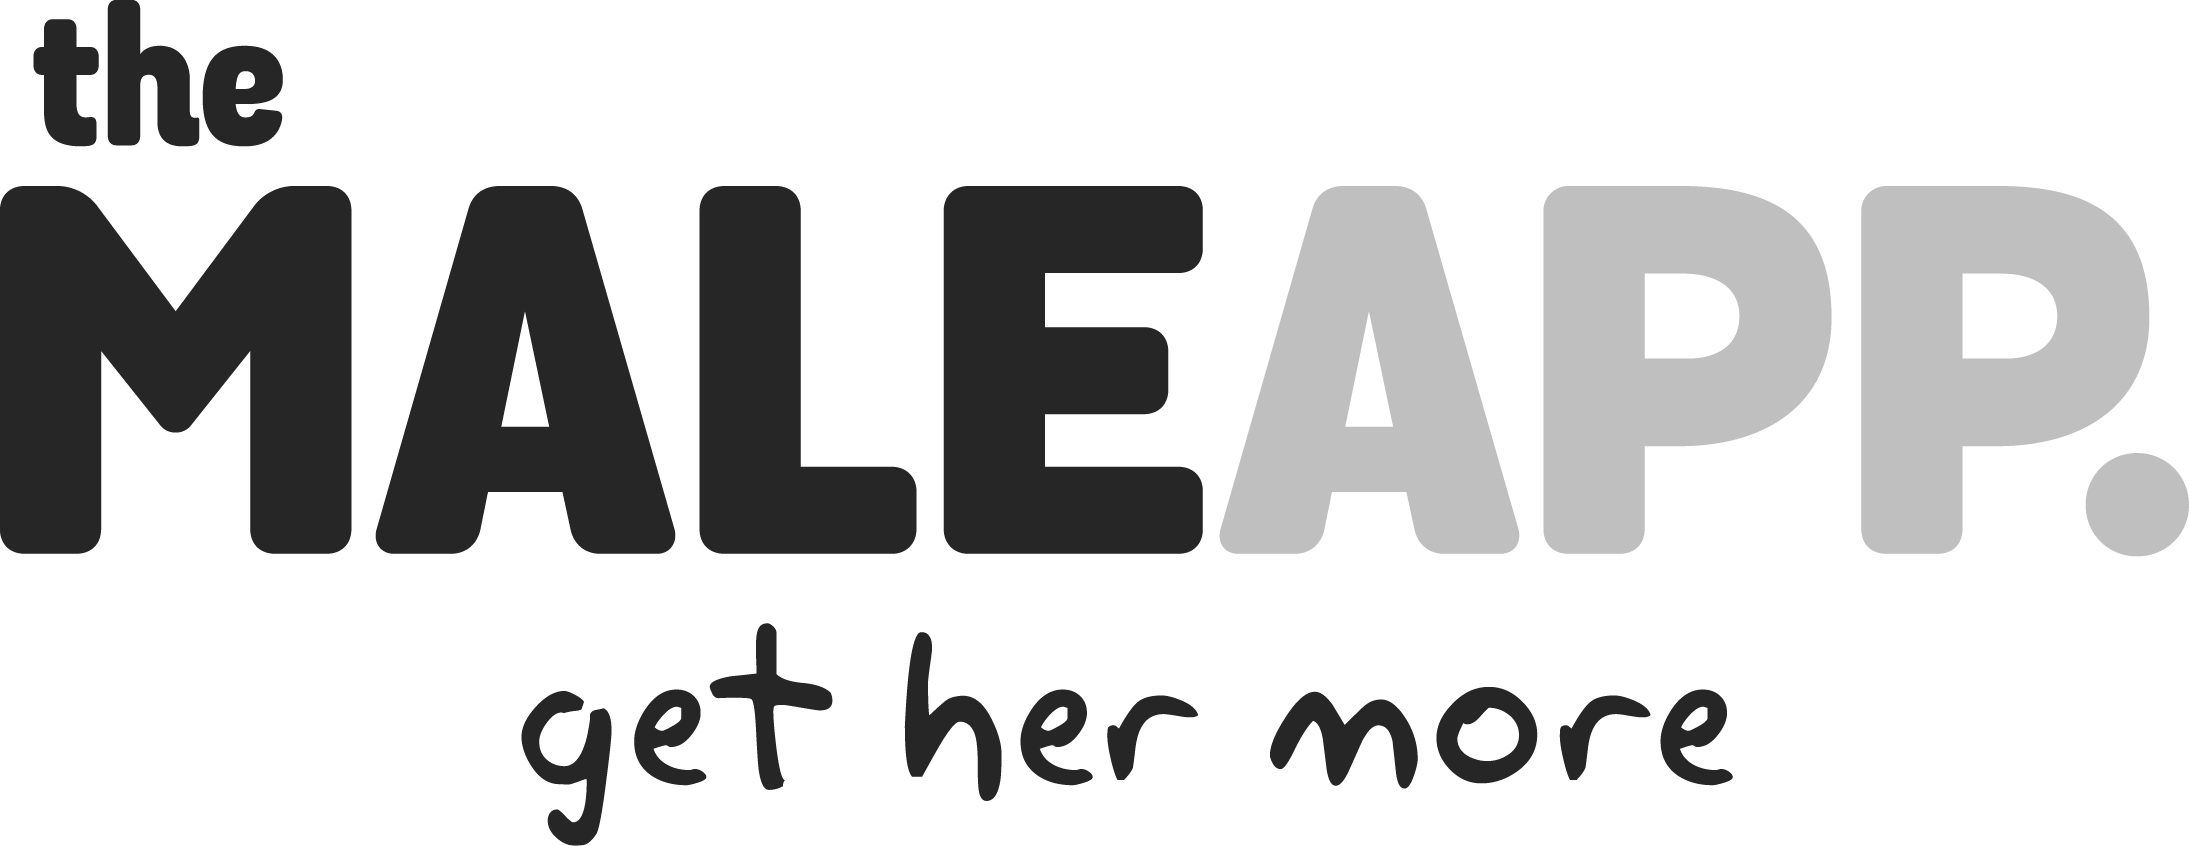 The Male App. - get her more